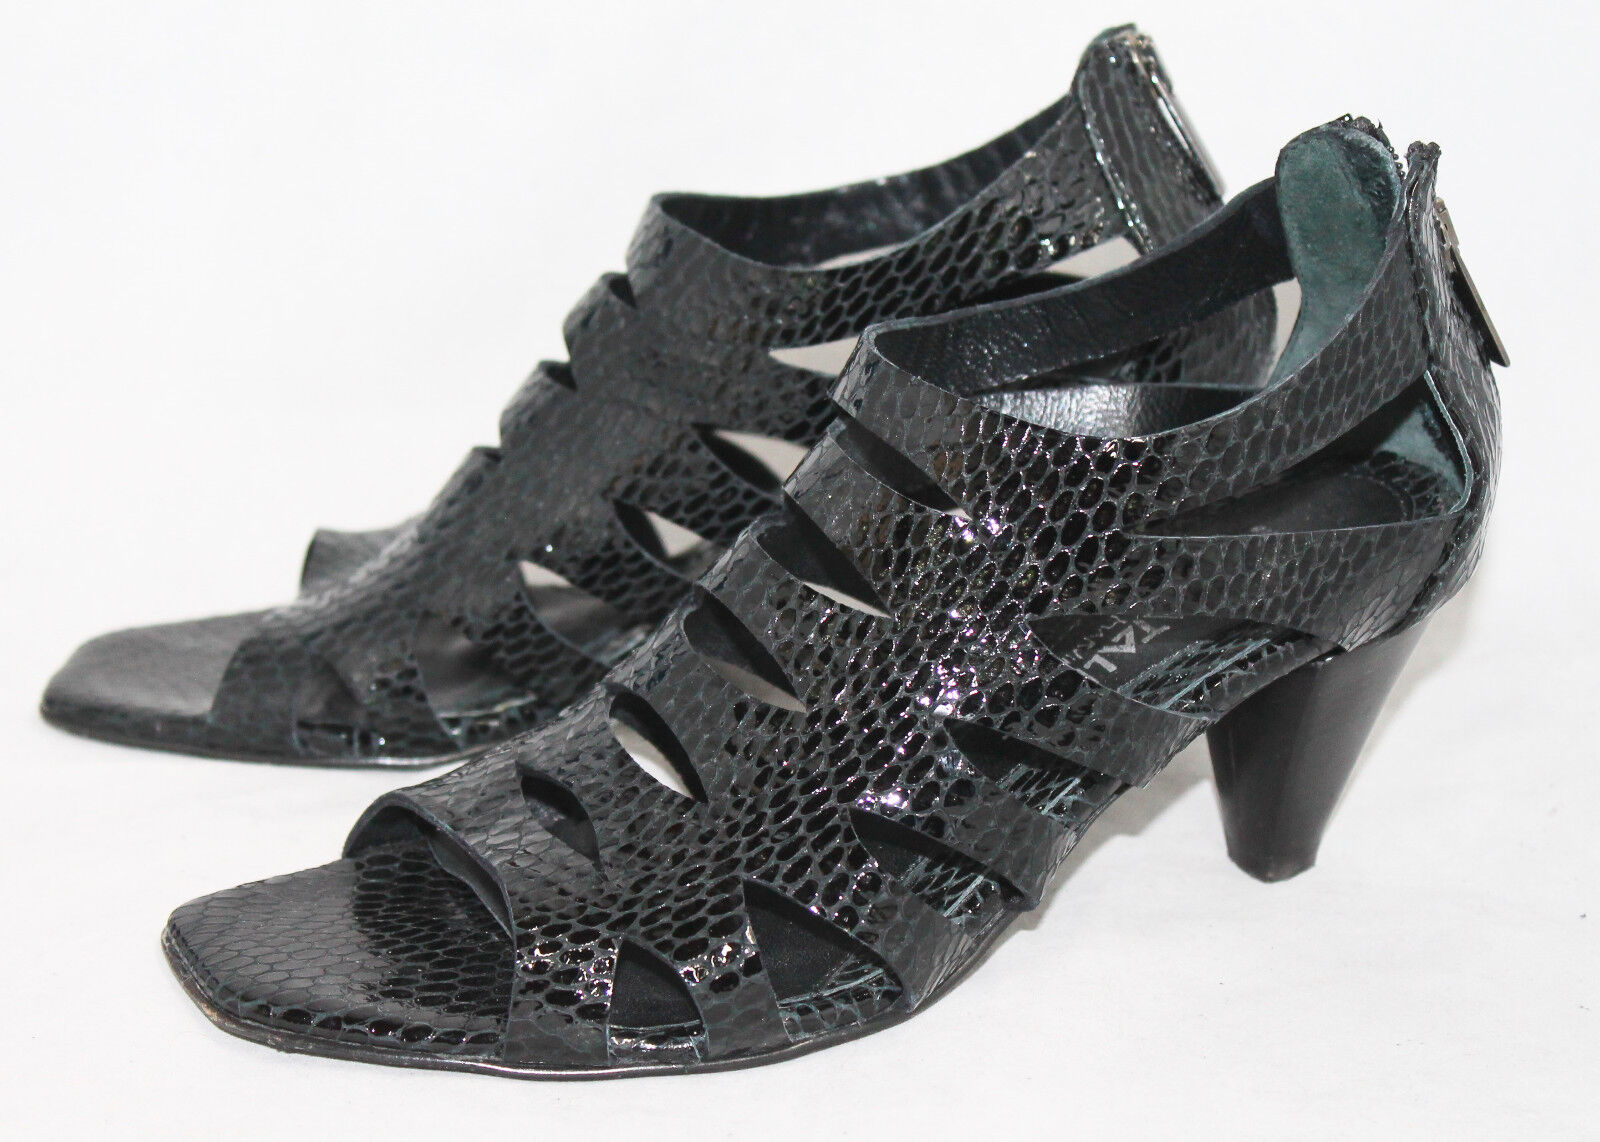 AQUATALIA Wo's 7 Black Patent Snake Embossed Cage Sandal Medium Heel Open Toe